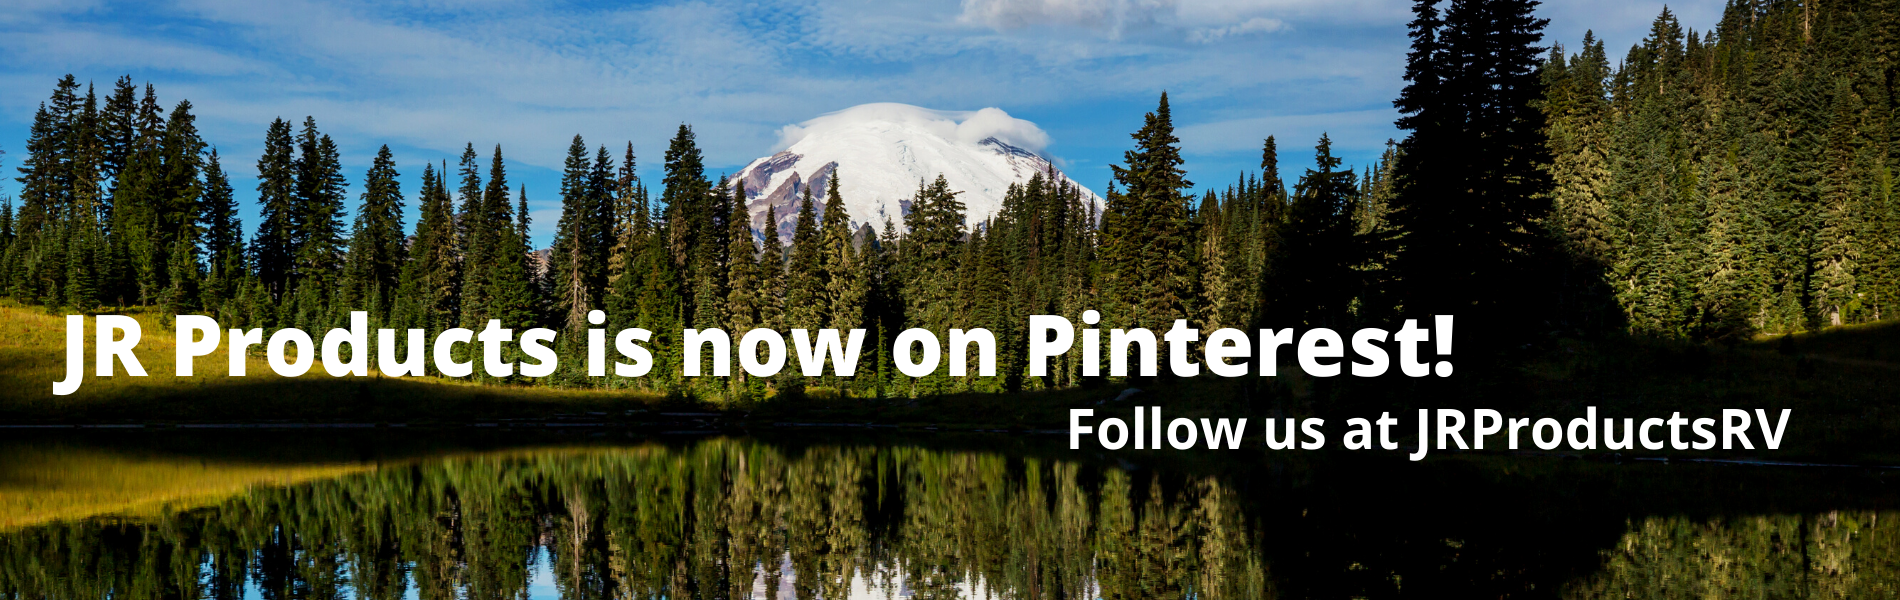 JR Products is now on Pinterest!